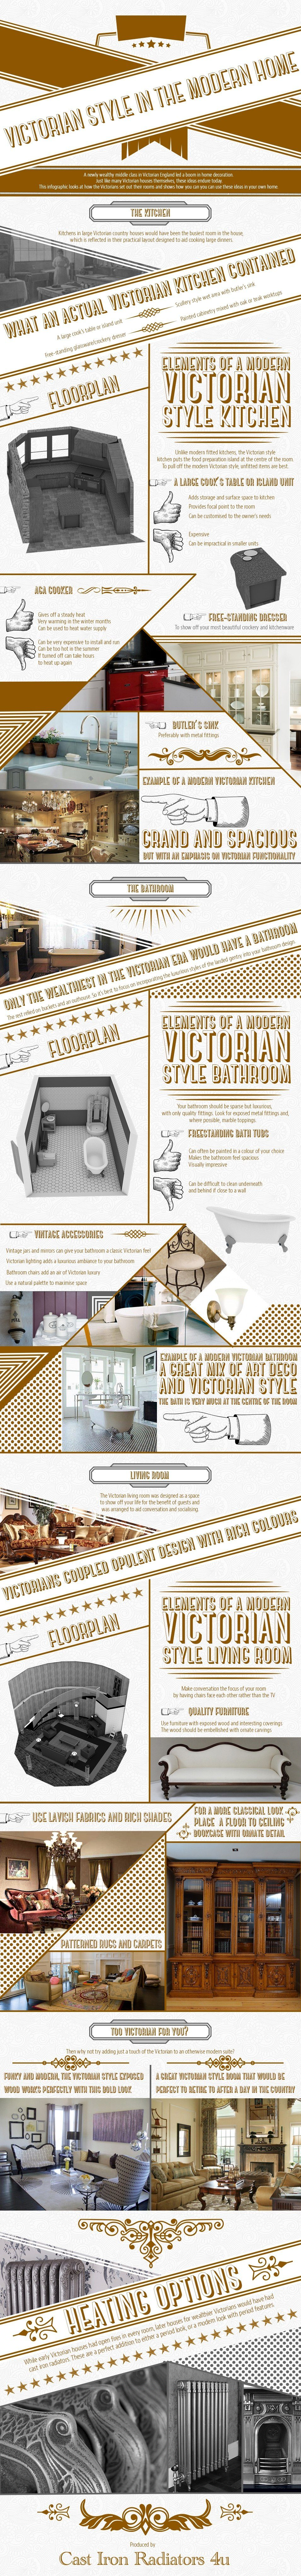 Adding Victorian Style to Your Modern Home Today (Infographic) Home Improvements Infographics interior decorating Latest Posts  Infographic